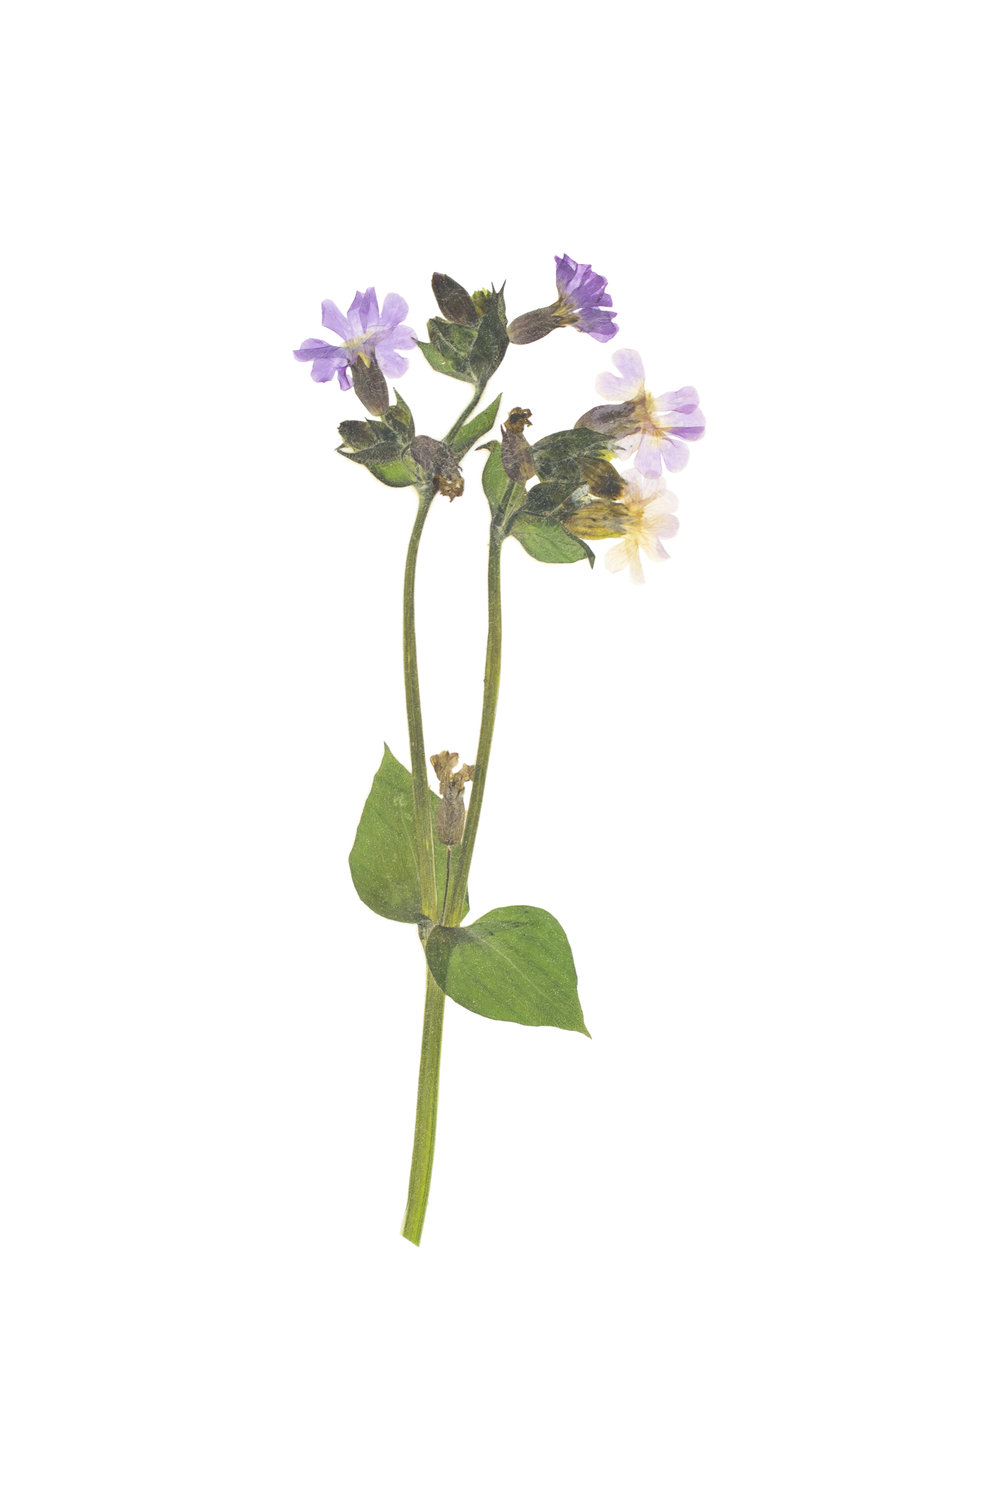 Silene dioica / Red Campion